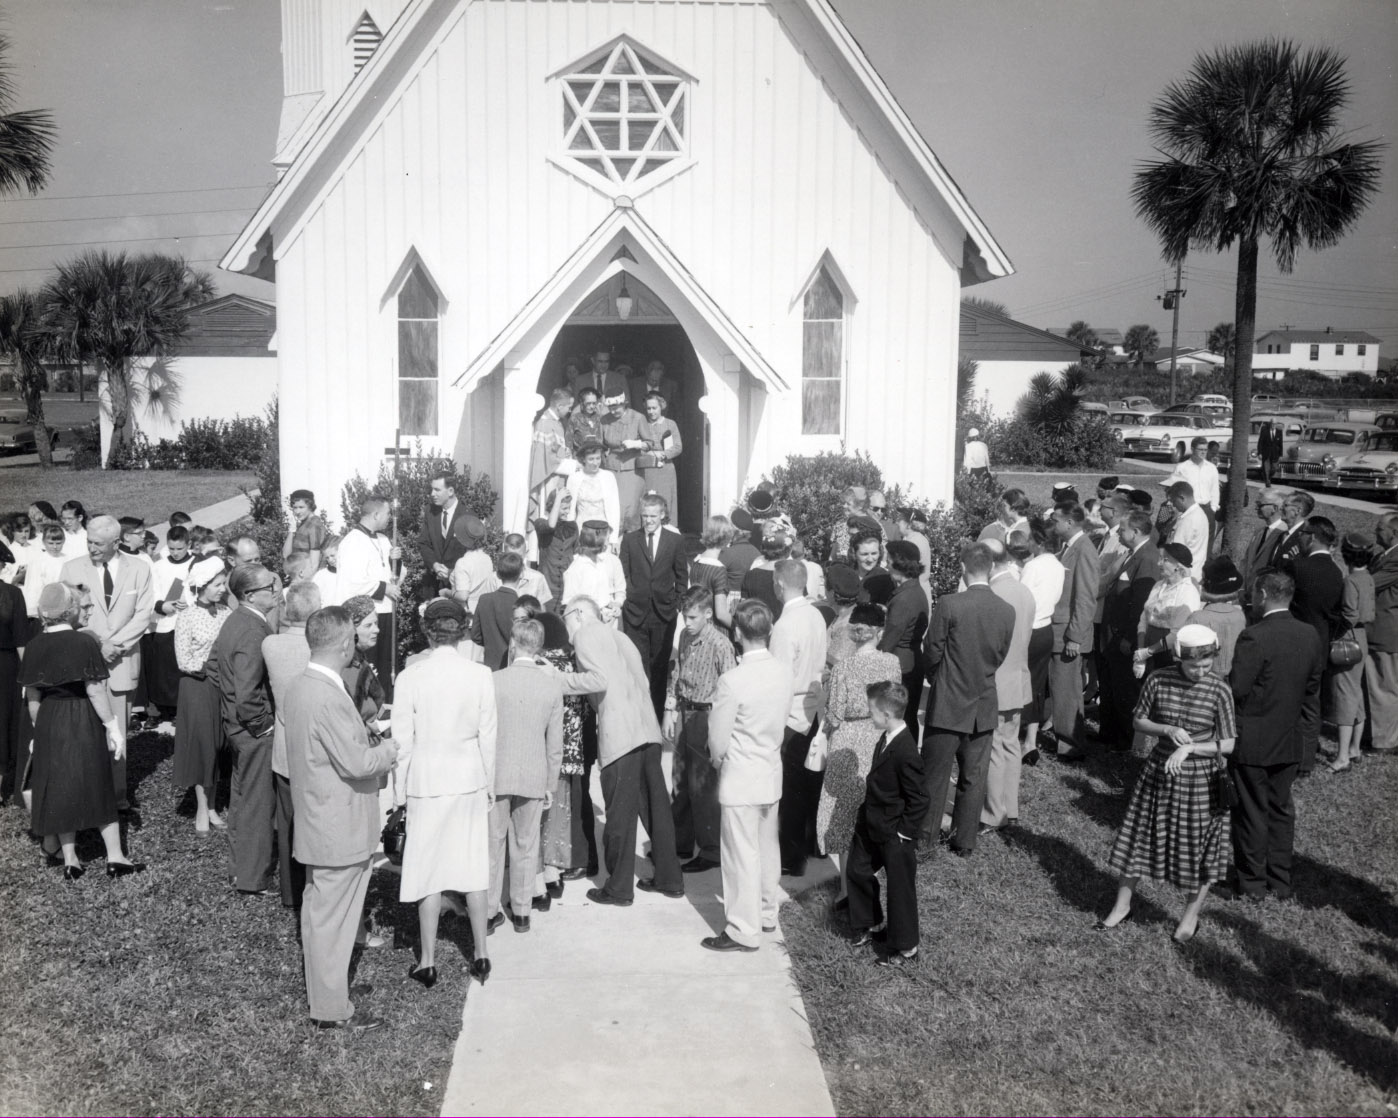 This 1955 photograph shows the church in its second location at 11th Avenue North and 5th Street in Jacksonville Beach.